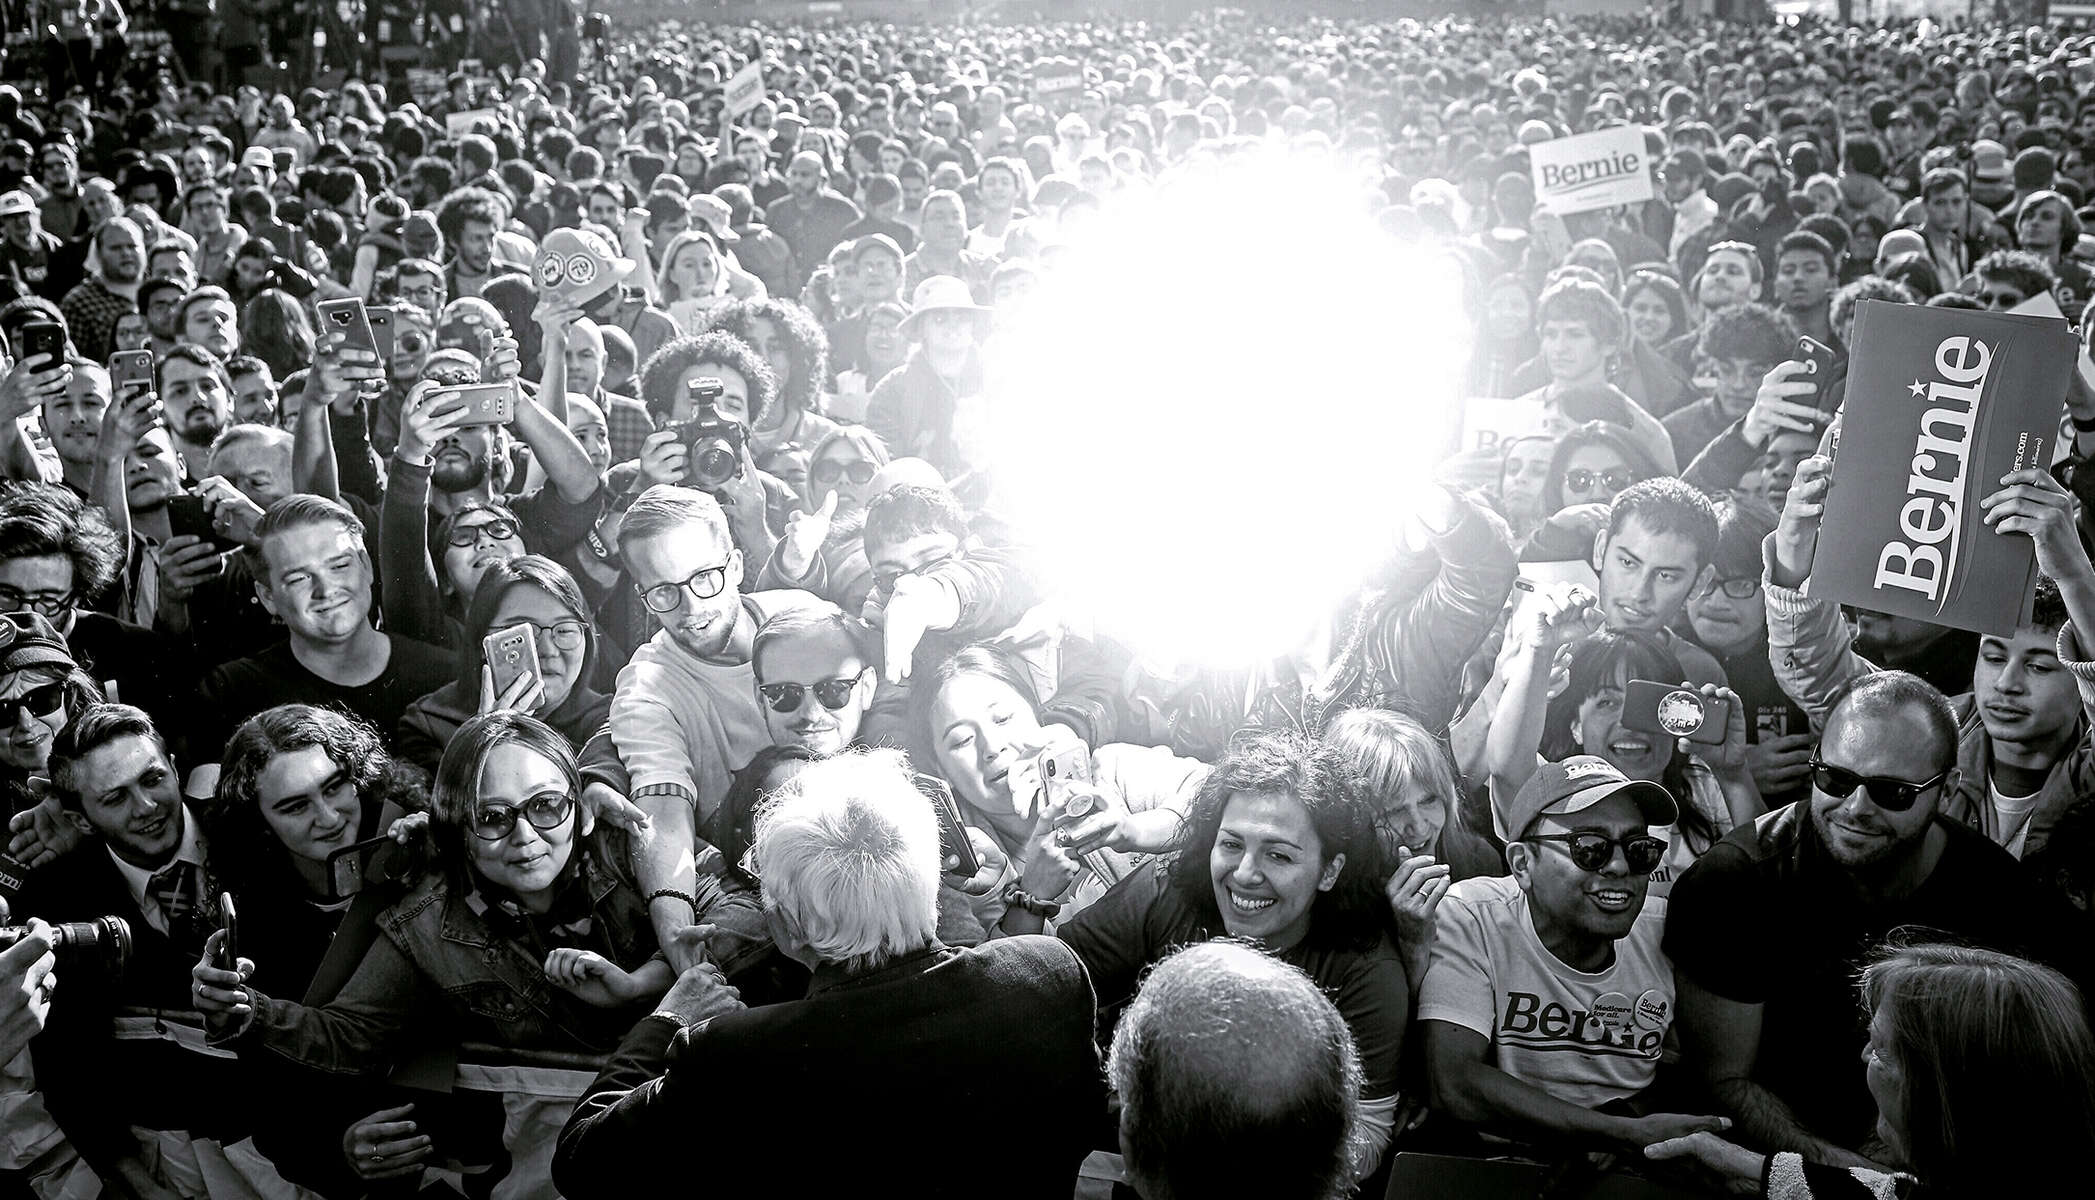 Democratic U.S. presidential candidate and U.S. Senator Bernie Sanders (I-VT) greets the audience after speaking at a {quote}Bernie's Back{quote} rally at Queensbridge Park in Queens, NY, on October 19, 2019. The rally, at which Representative Alexandria Ocasio-Cortez (D-NY) endorsed Sanders, drew over 20,000 participants and took place shortly after Sanders was hospitalized for a heart attack at the start of the month.(For Reuters)